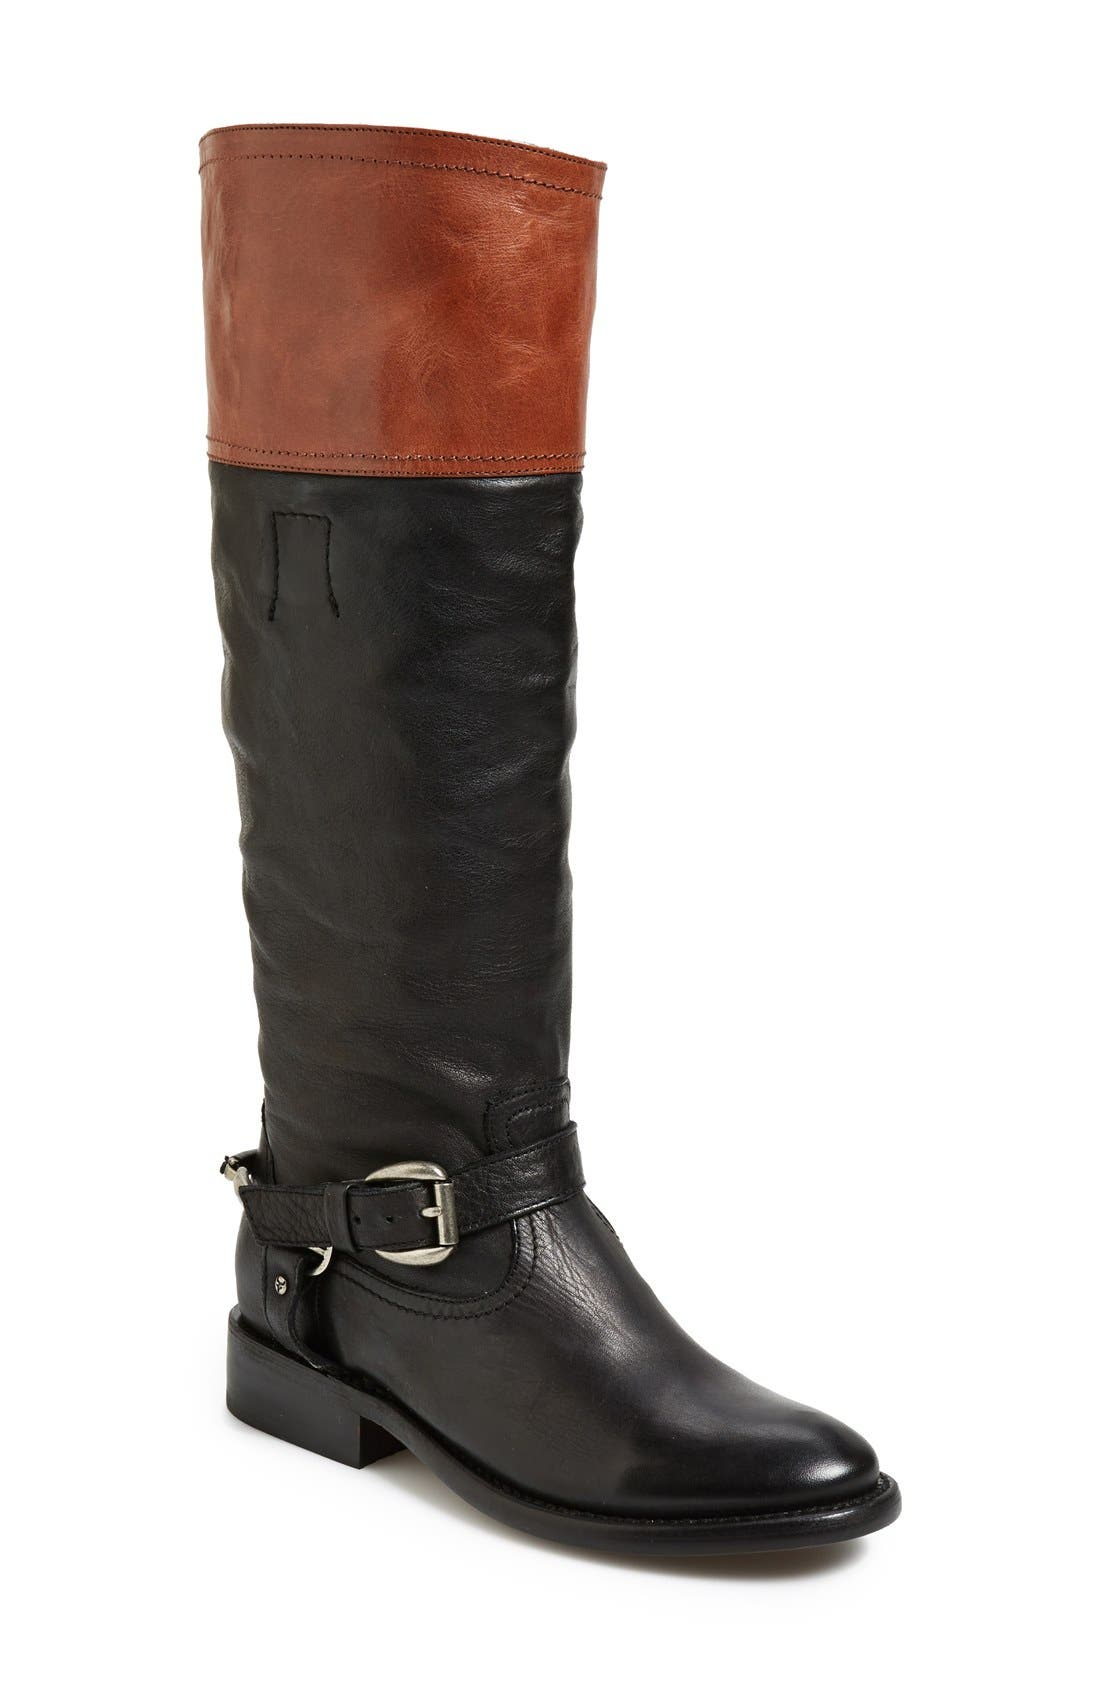 Main Image - Trask 'Addison' Riding Boot (Women)